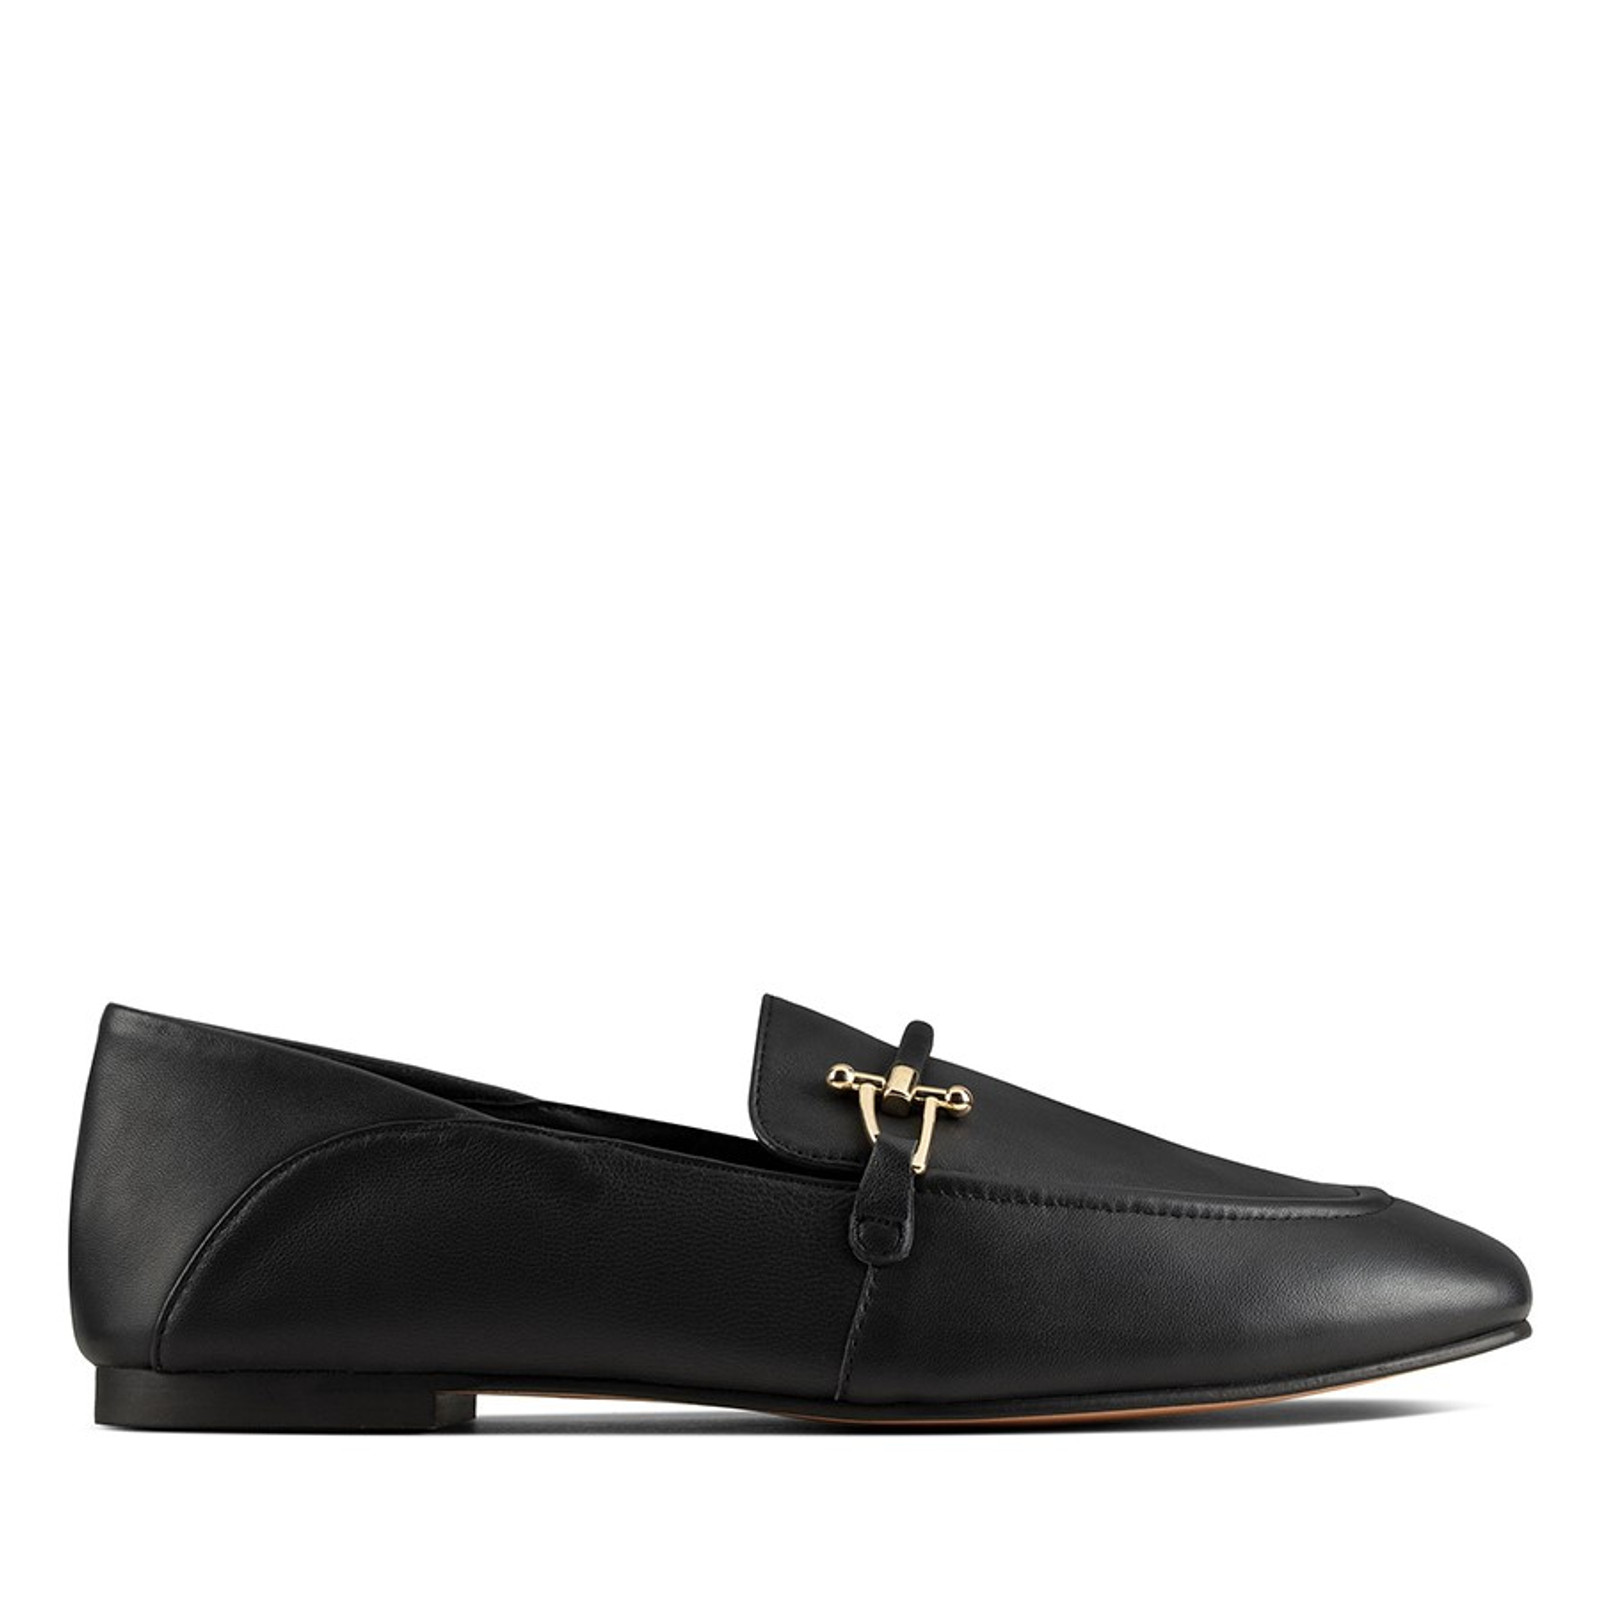 Clarks Womens PURE2 LOAFER Black Leather